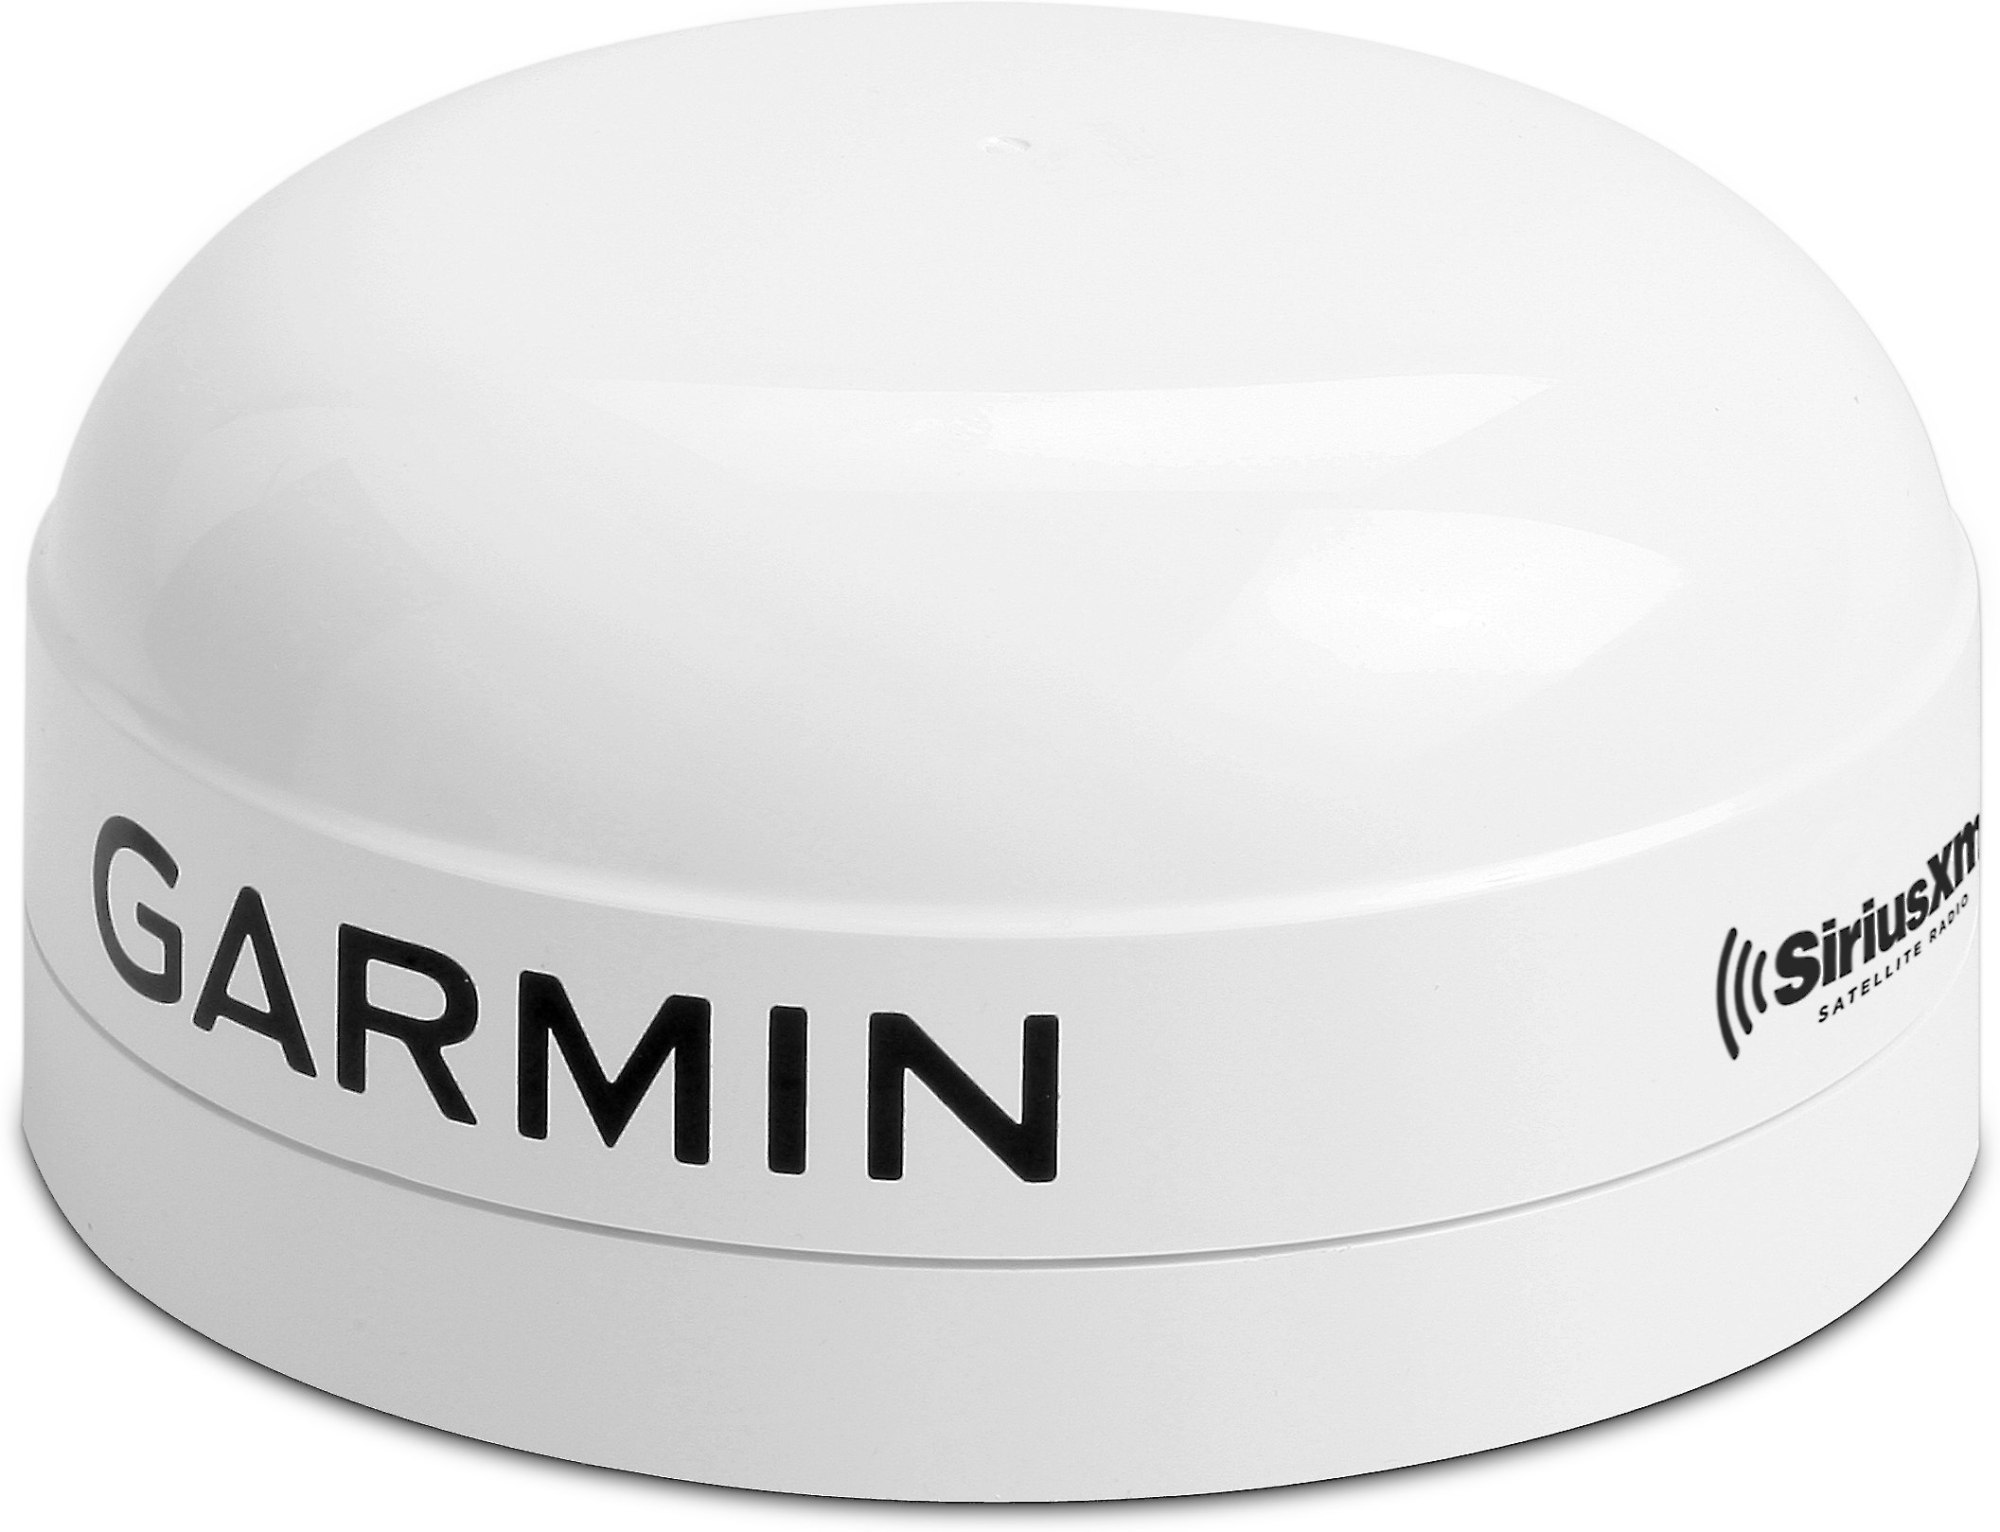 hight resolution of garmin gxm 53 weather antenna receiver combo with siriusxm capability at crutchfield com